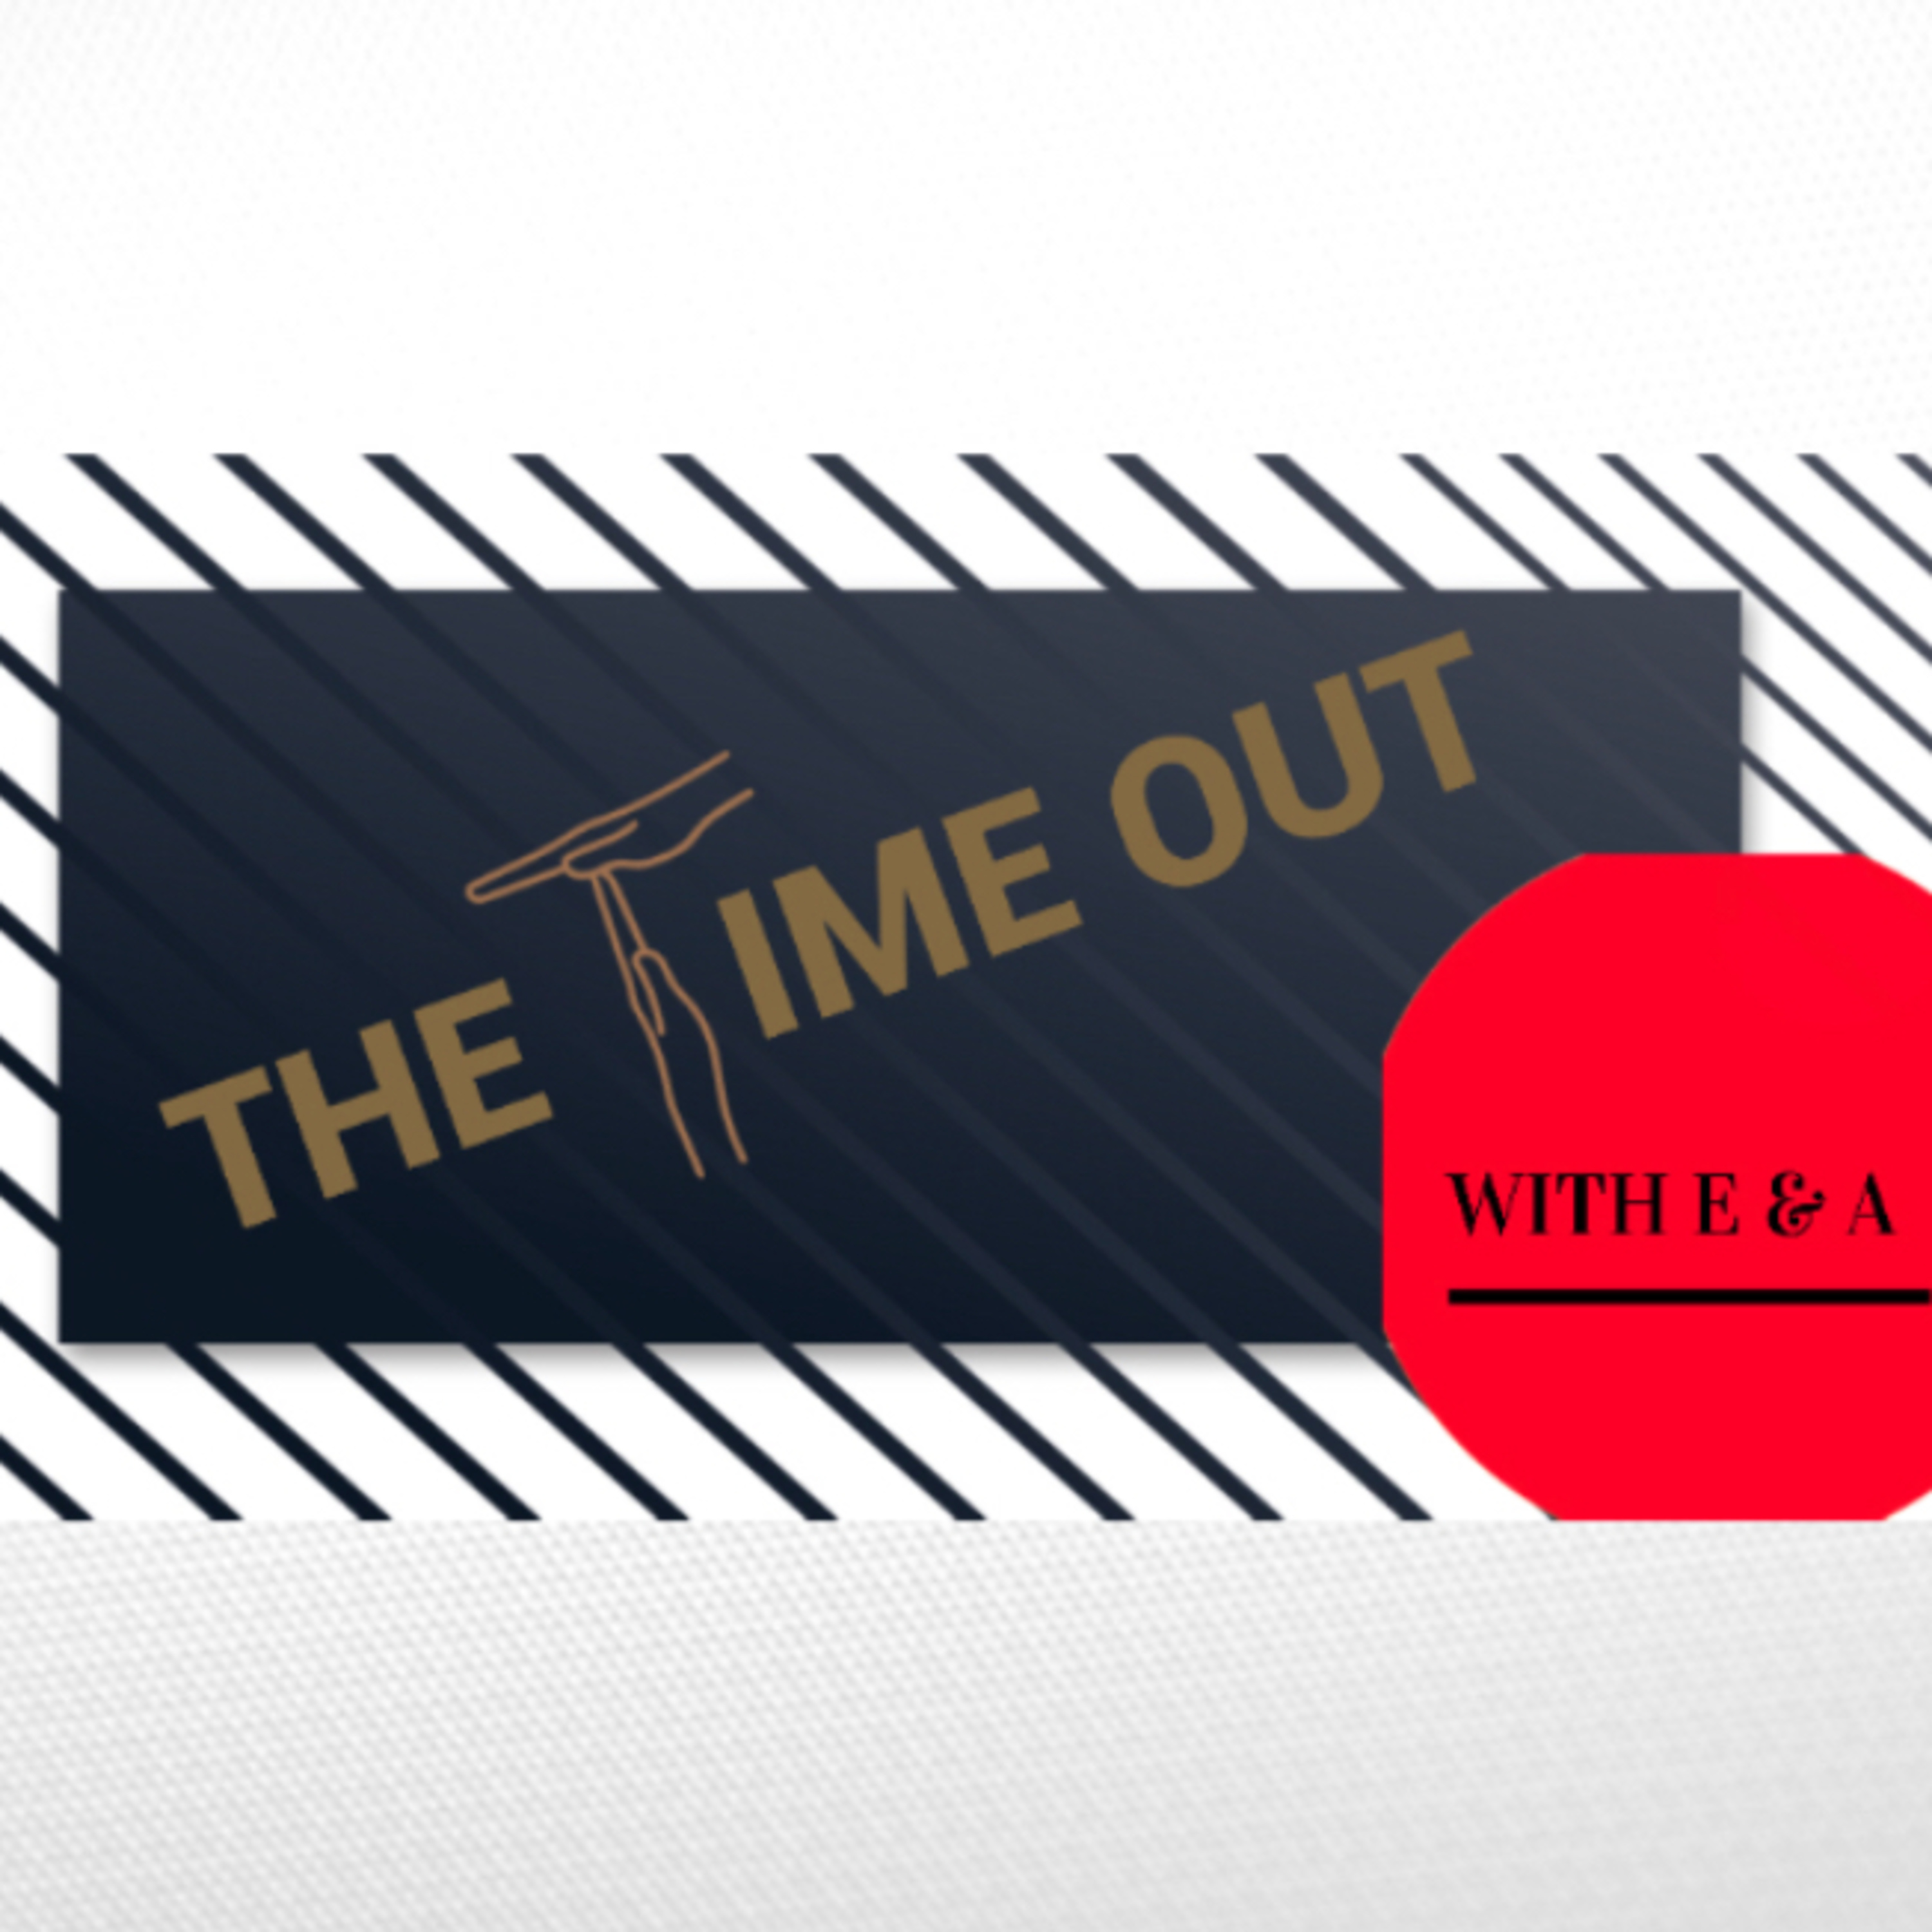 The Time Out: with E & A Episode 1